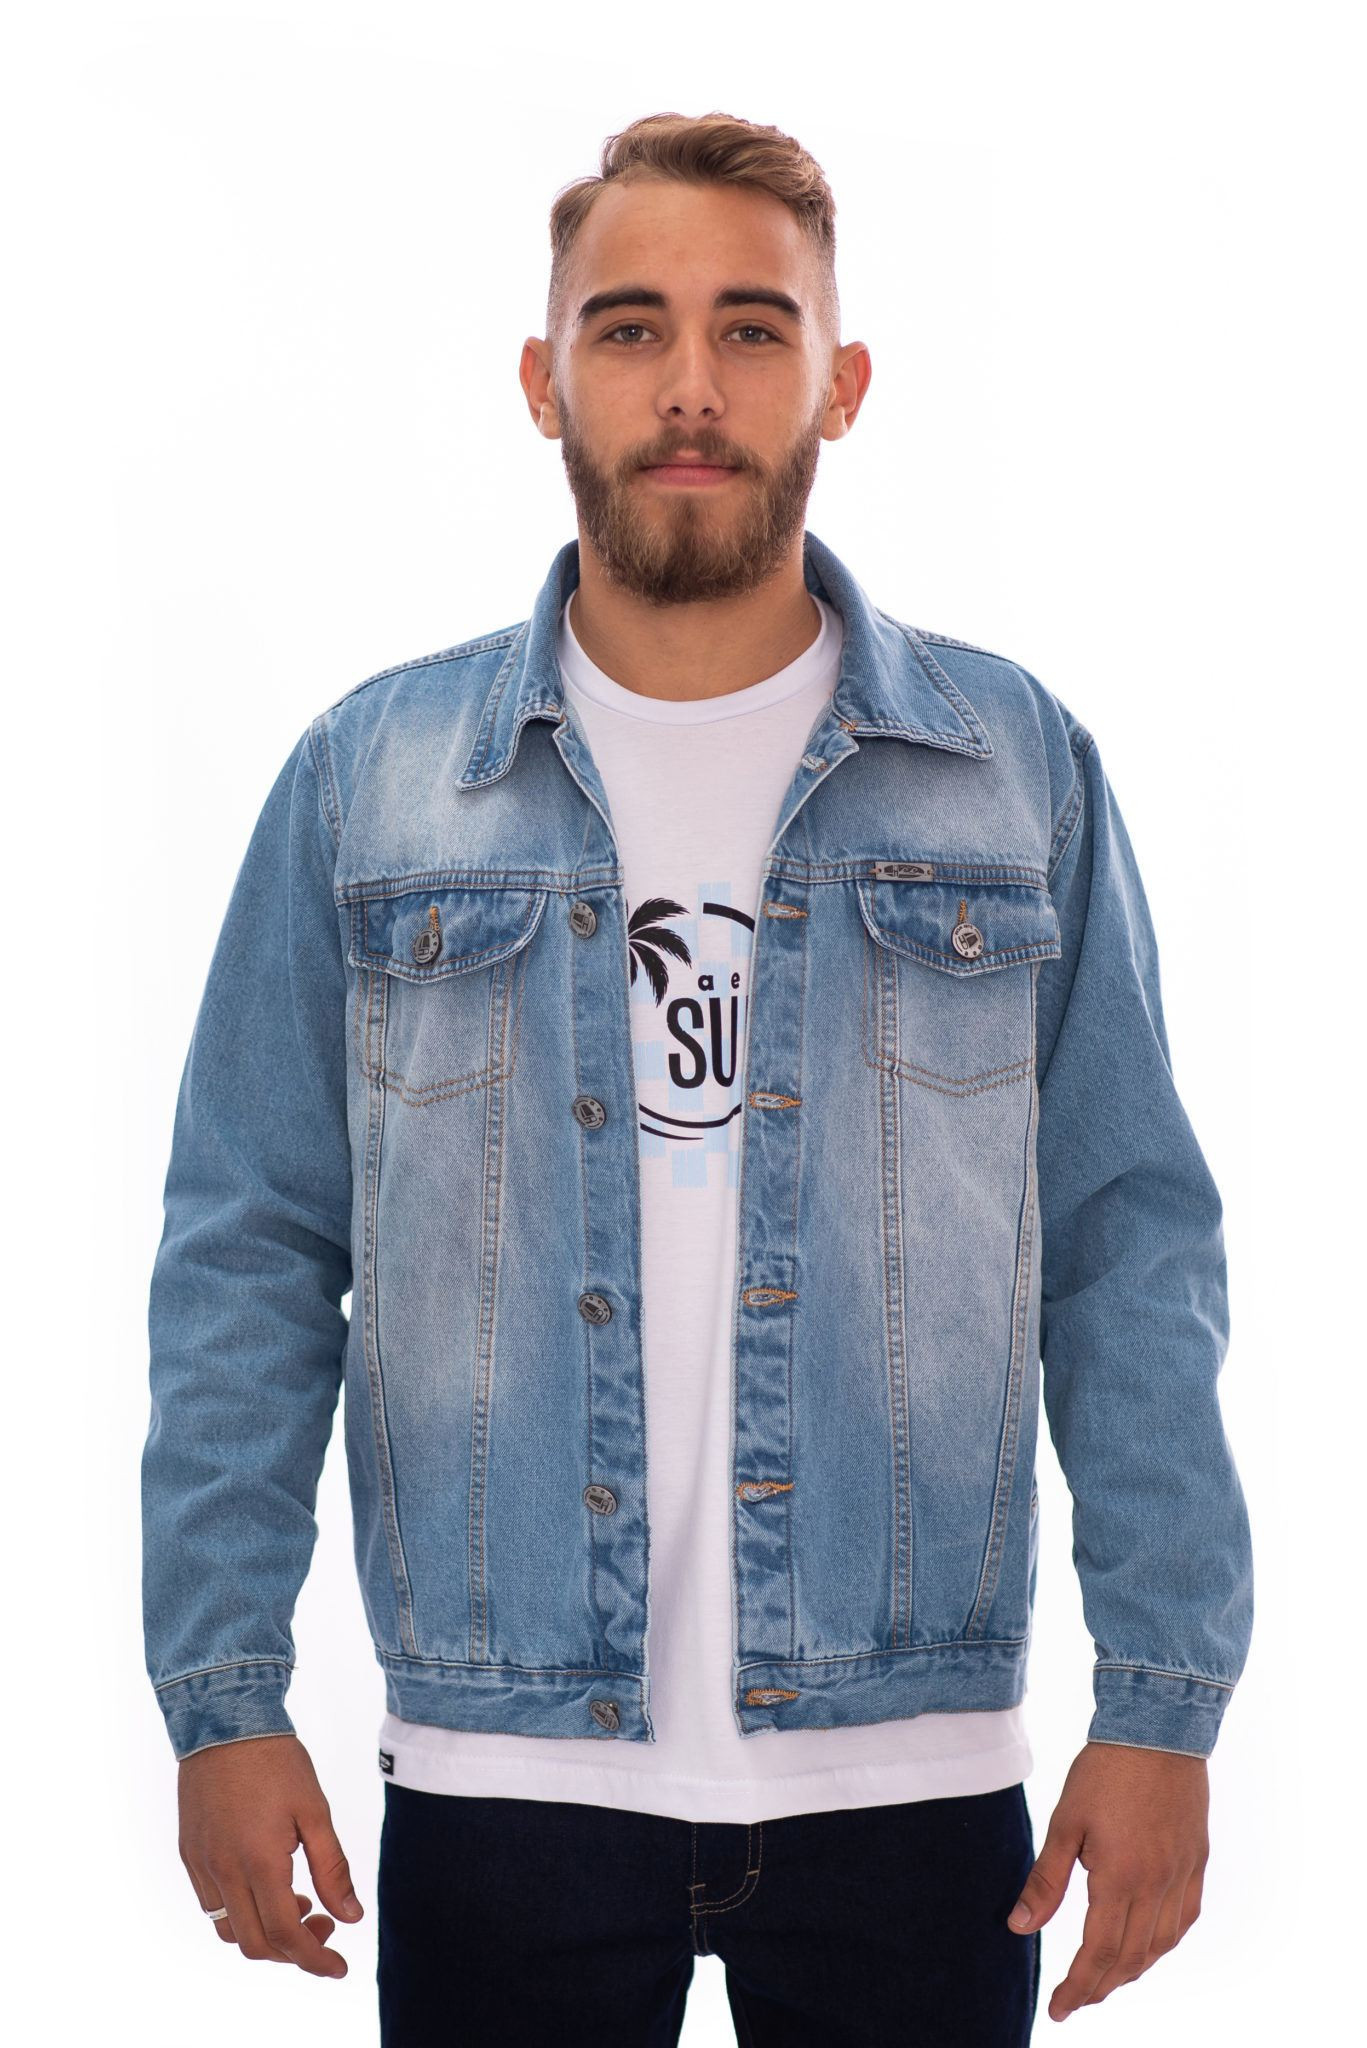 JAQUETA JEANS AEE SURF MASCULINA SKY REF. 407